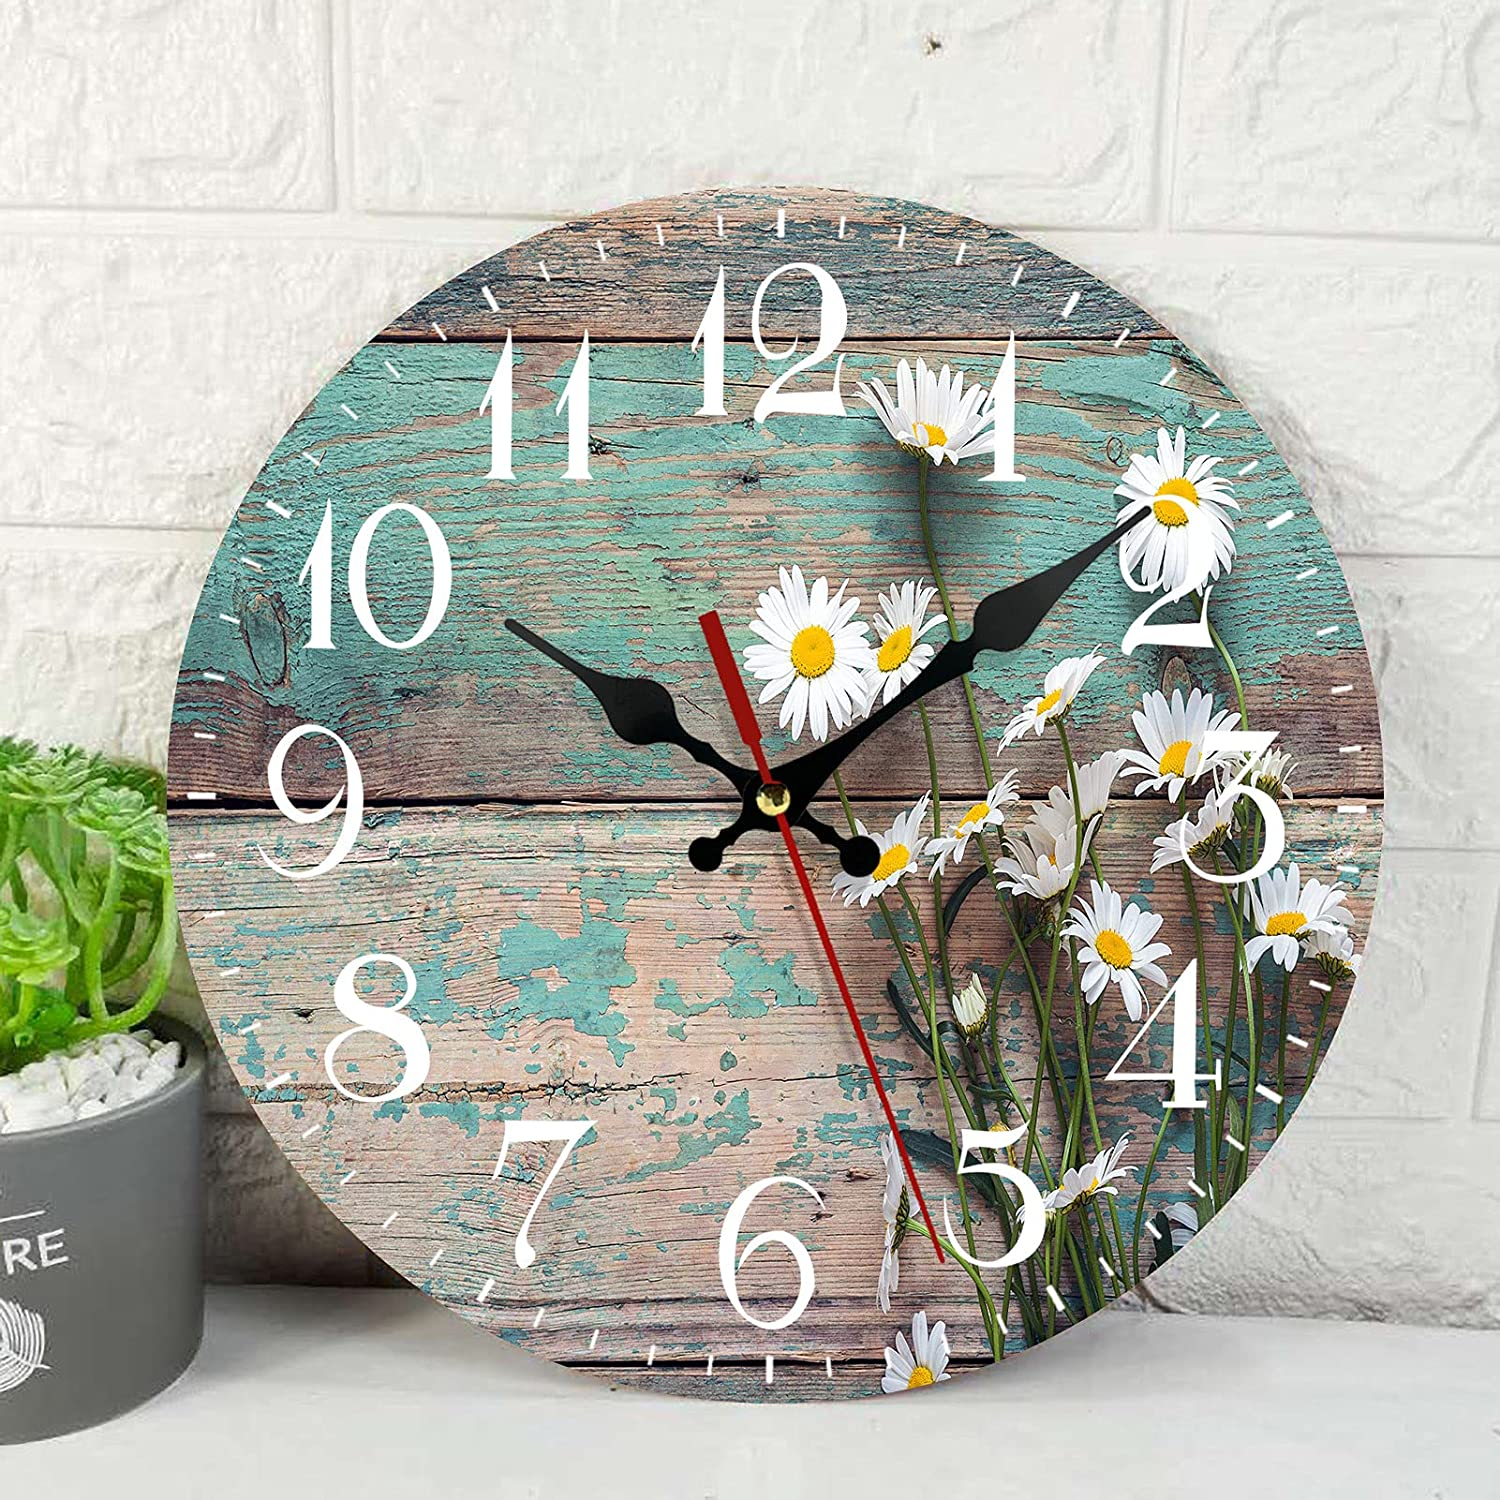 Wooden Wall Clock Silent Non-Ticking , Daisies Old Boards Dhabby Floral Vintage Round Coastal Wall Clocks Decor for Home Kitchen Living Room Office, Battery Operated(12 Inch)